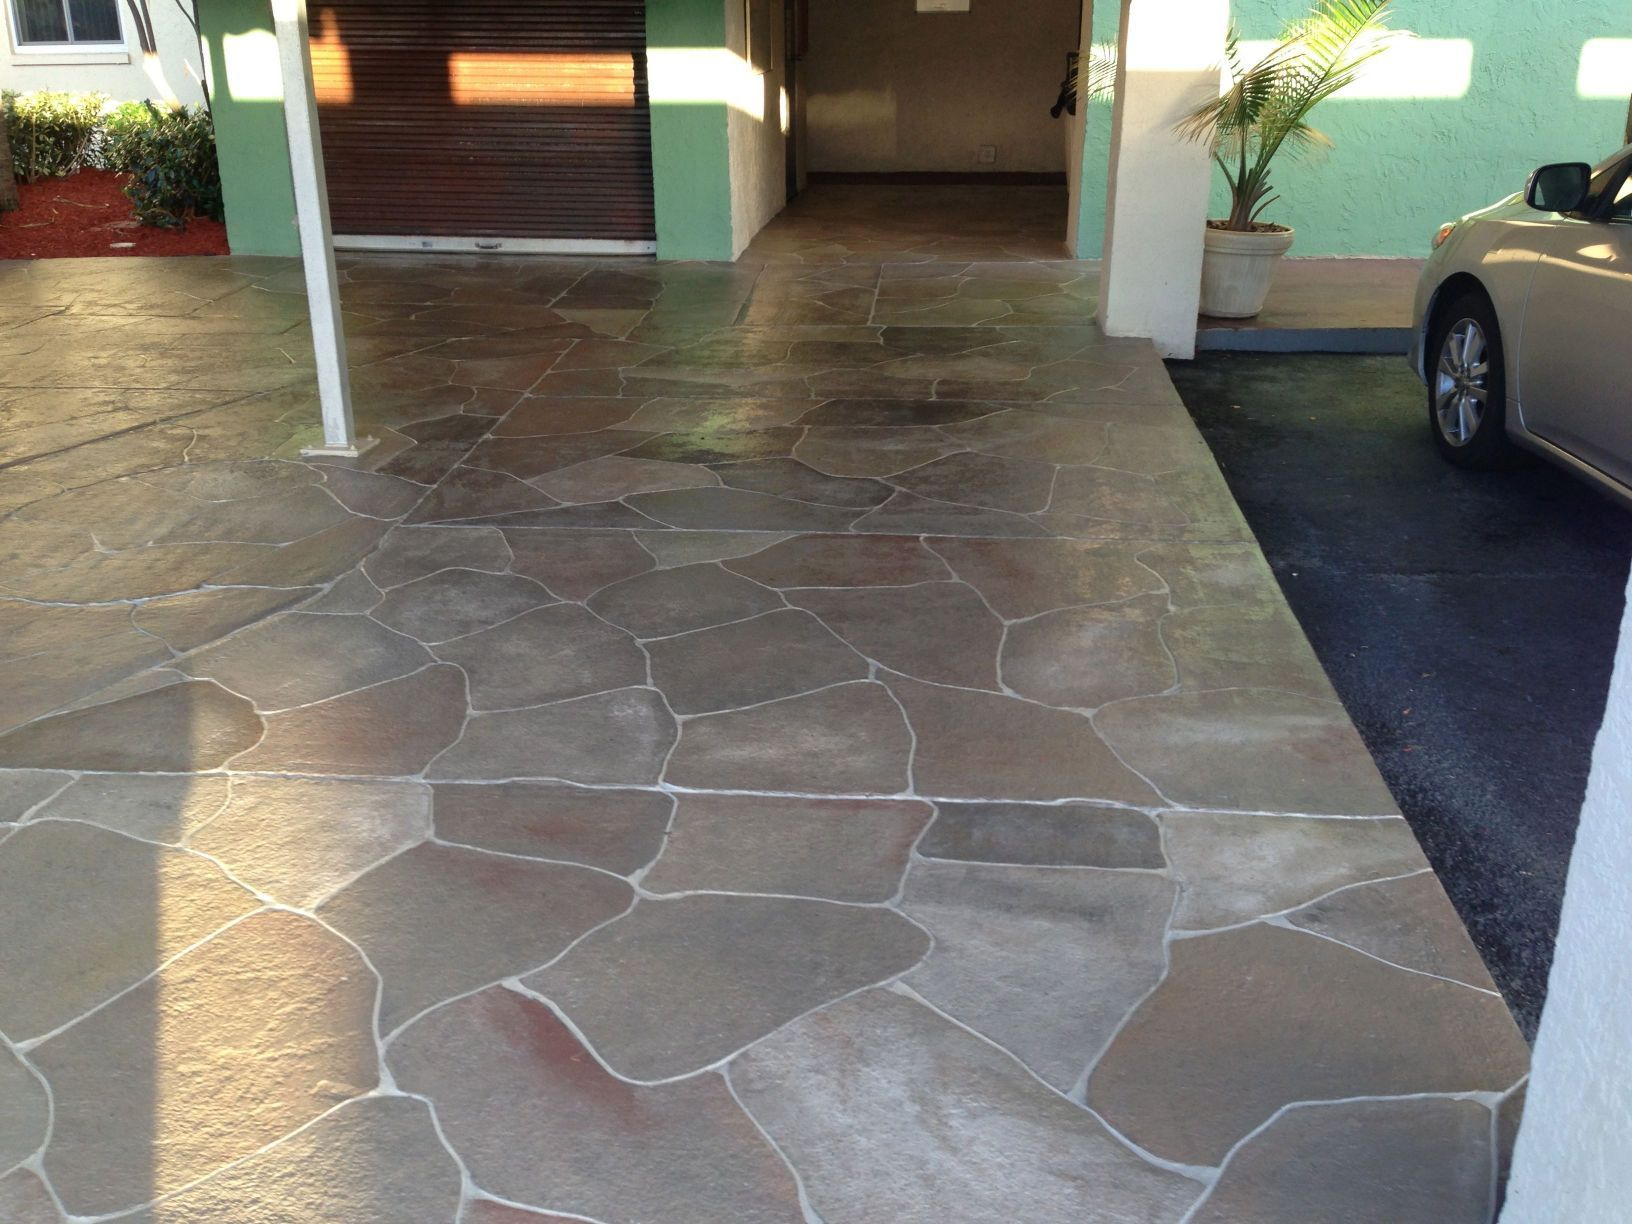 33 Amazing Concrete Tiles Pictures Decortez Painted Patio Paint Concrete Patio Painted Cement Patio